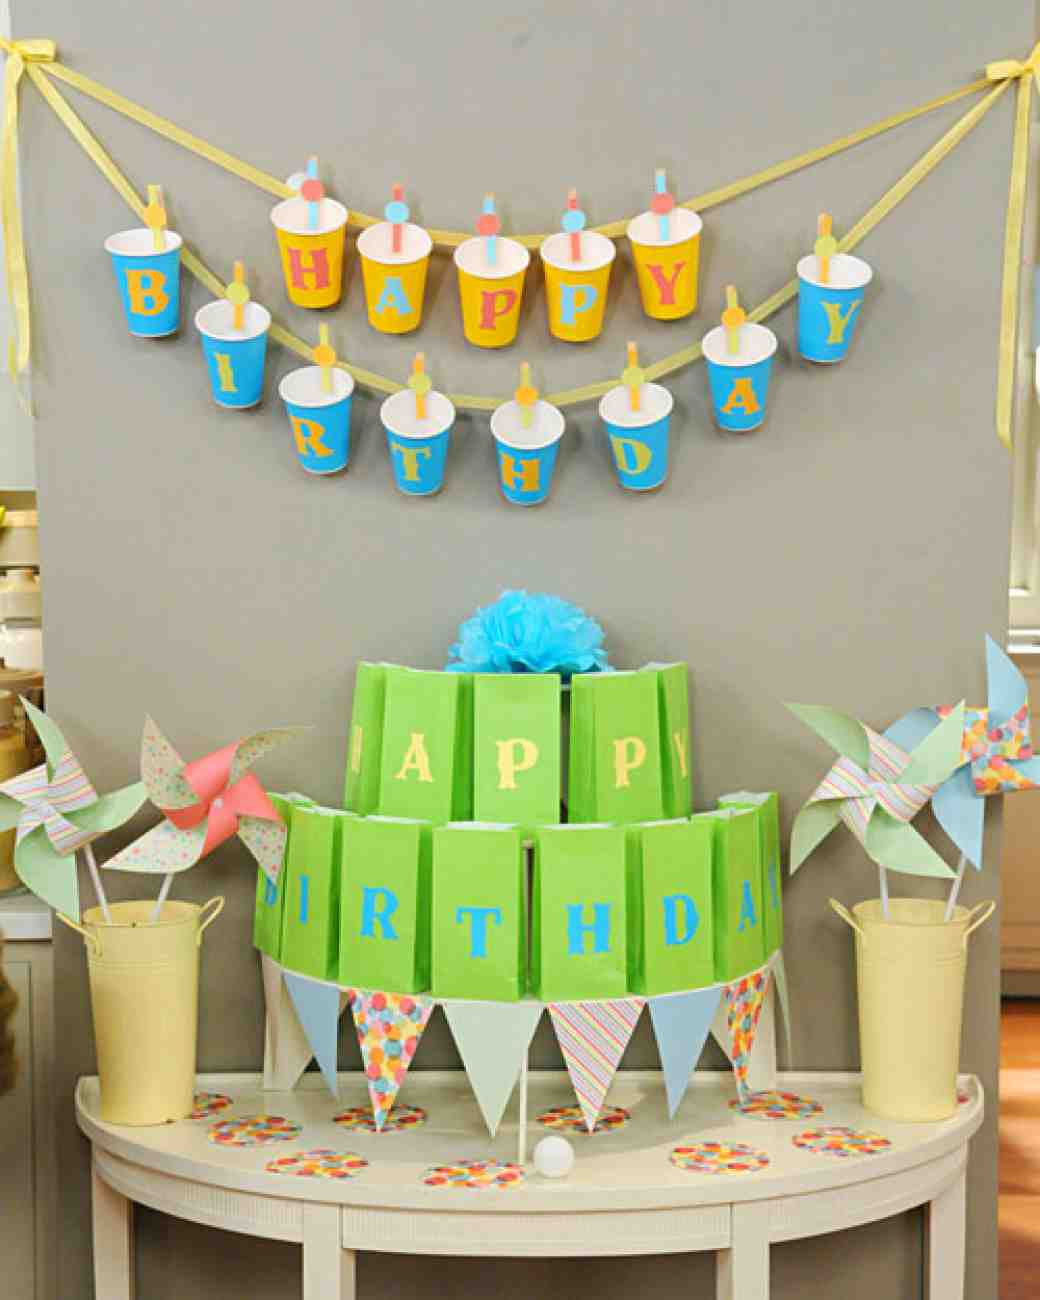 Best ideas about Diy Birthday Decorations . Save or Pin 15 Adorable DIY Birthday Banners Now.